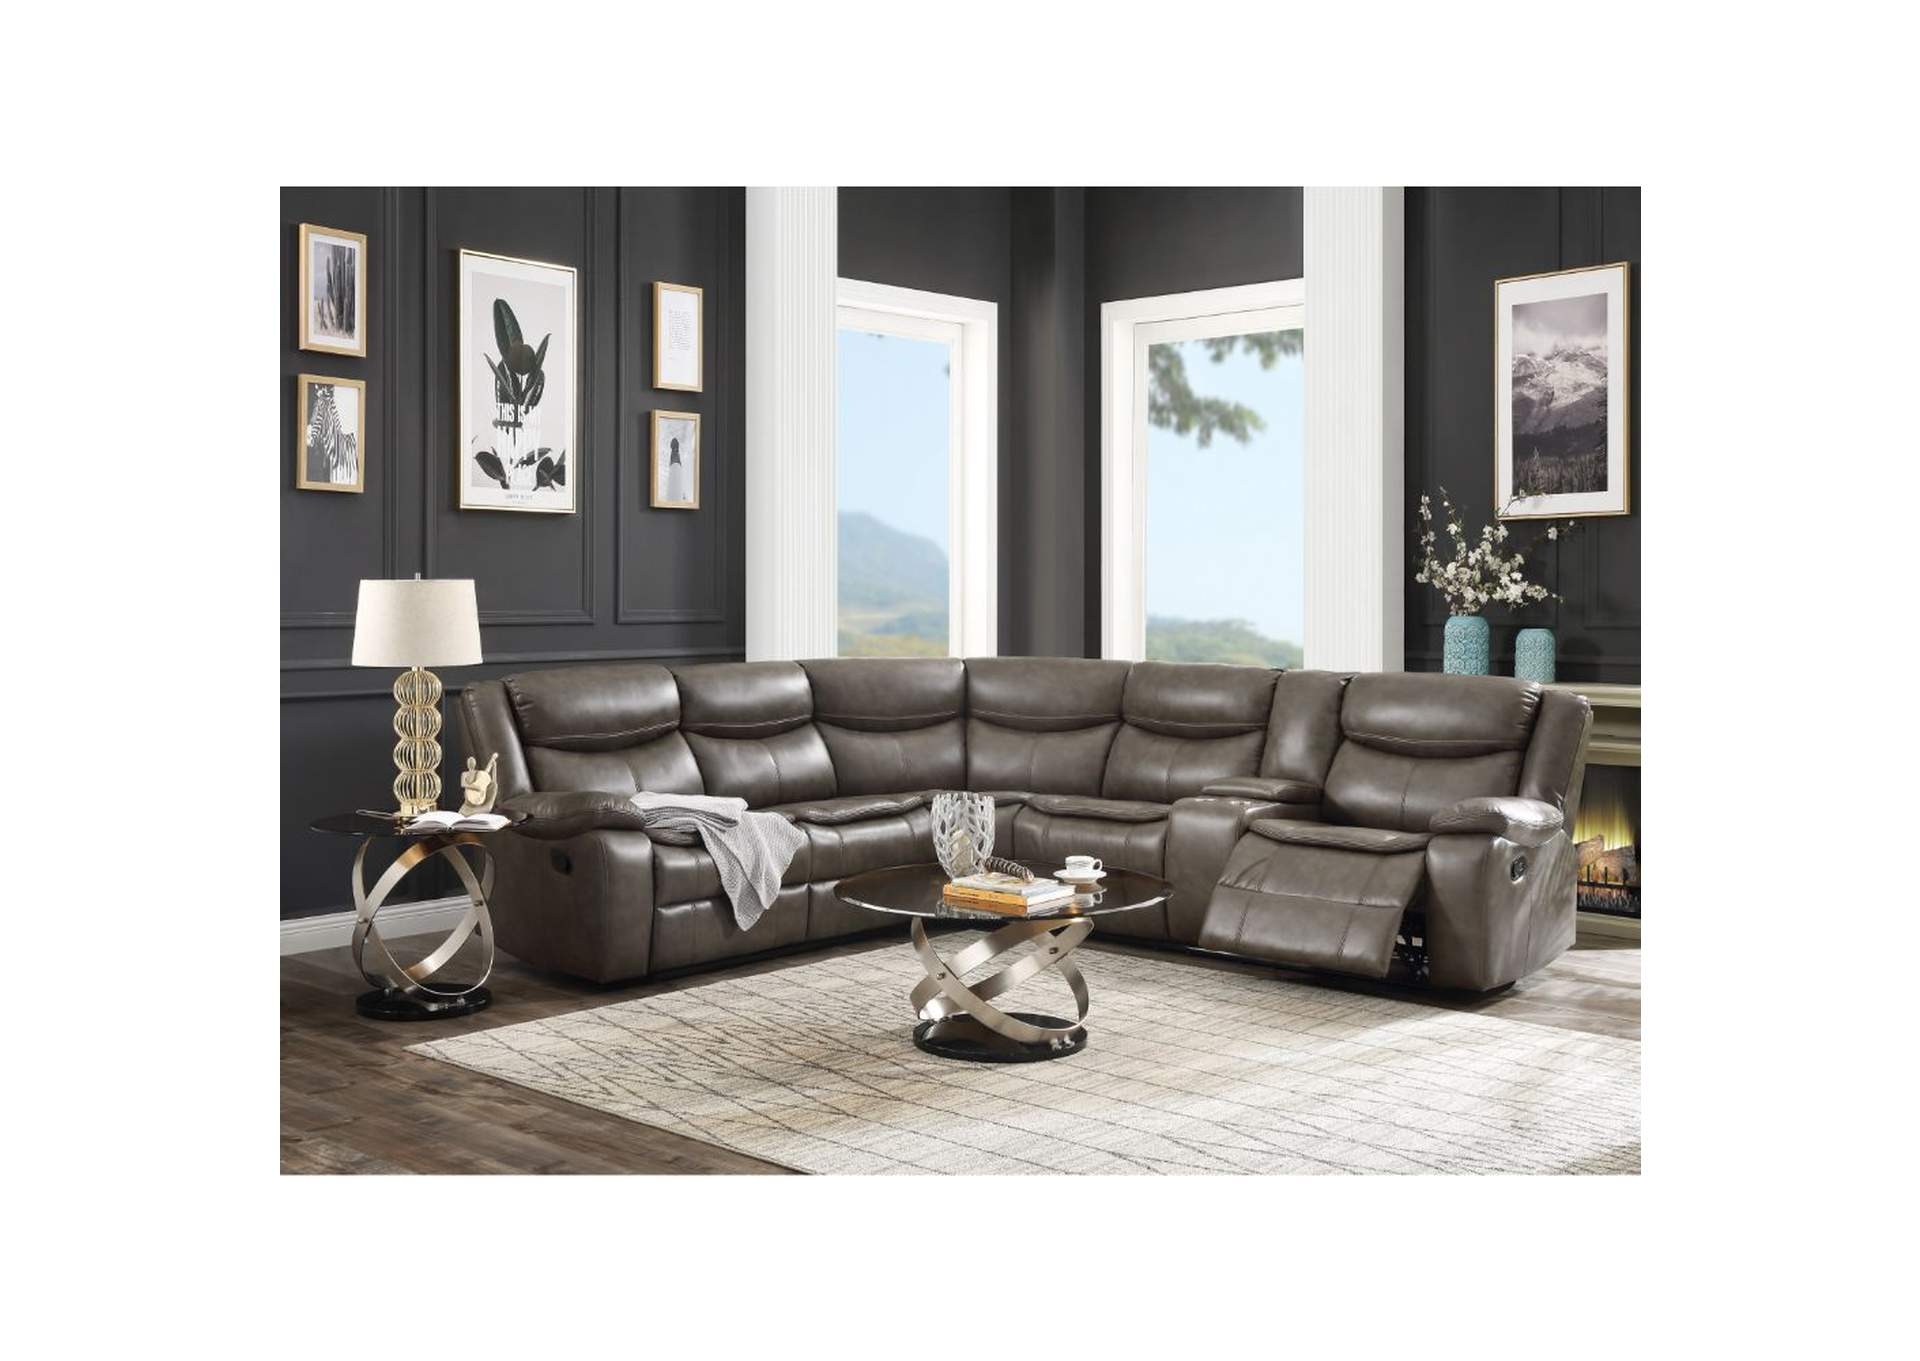 Tavin Taupe Leather-Aire Match Sectional Sofa,Acme